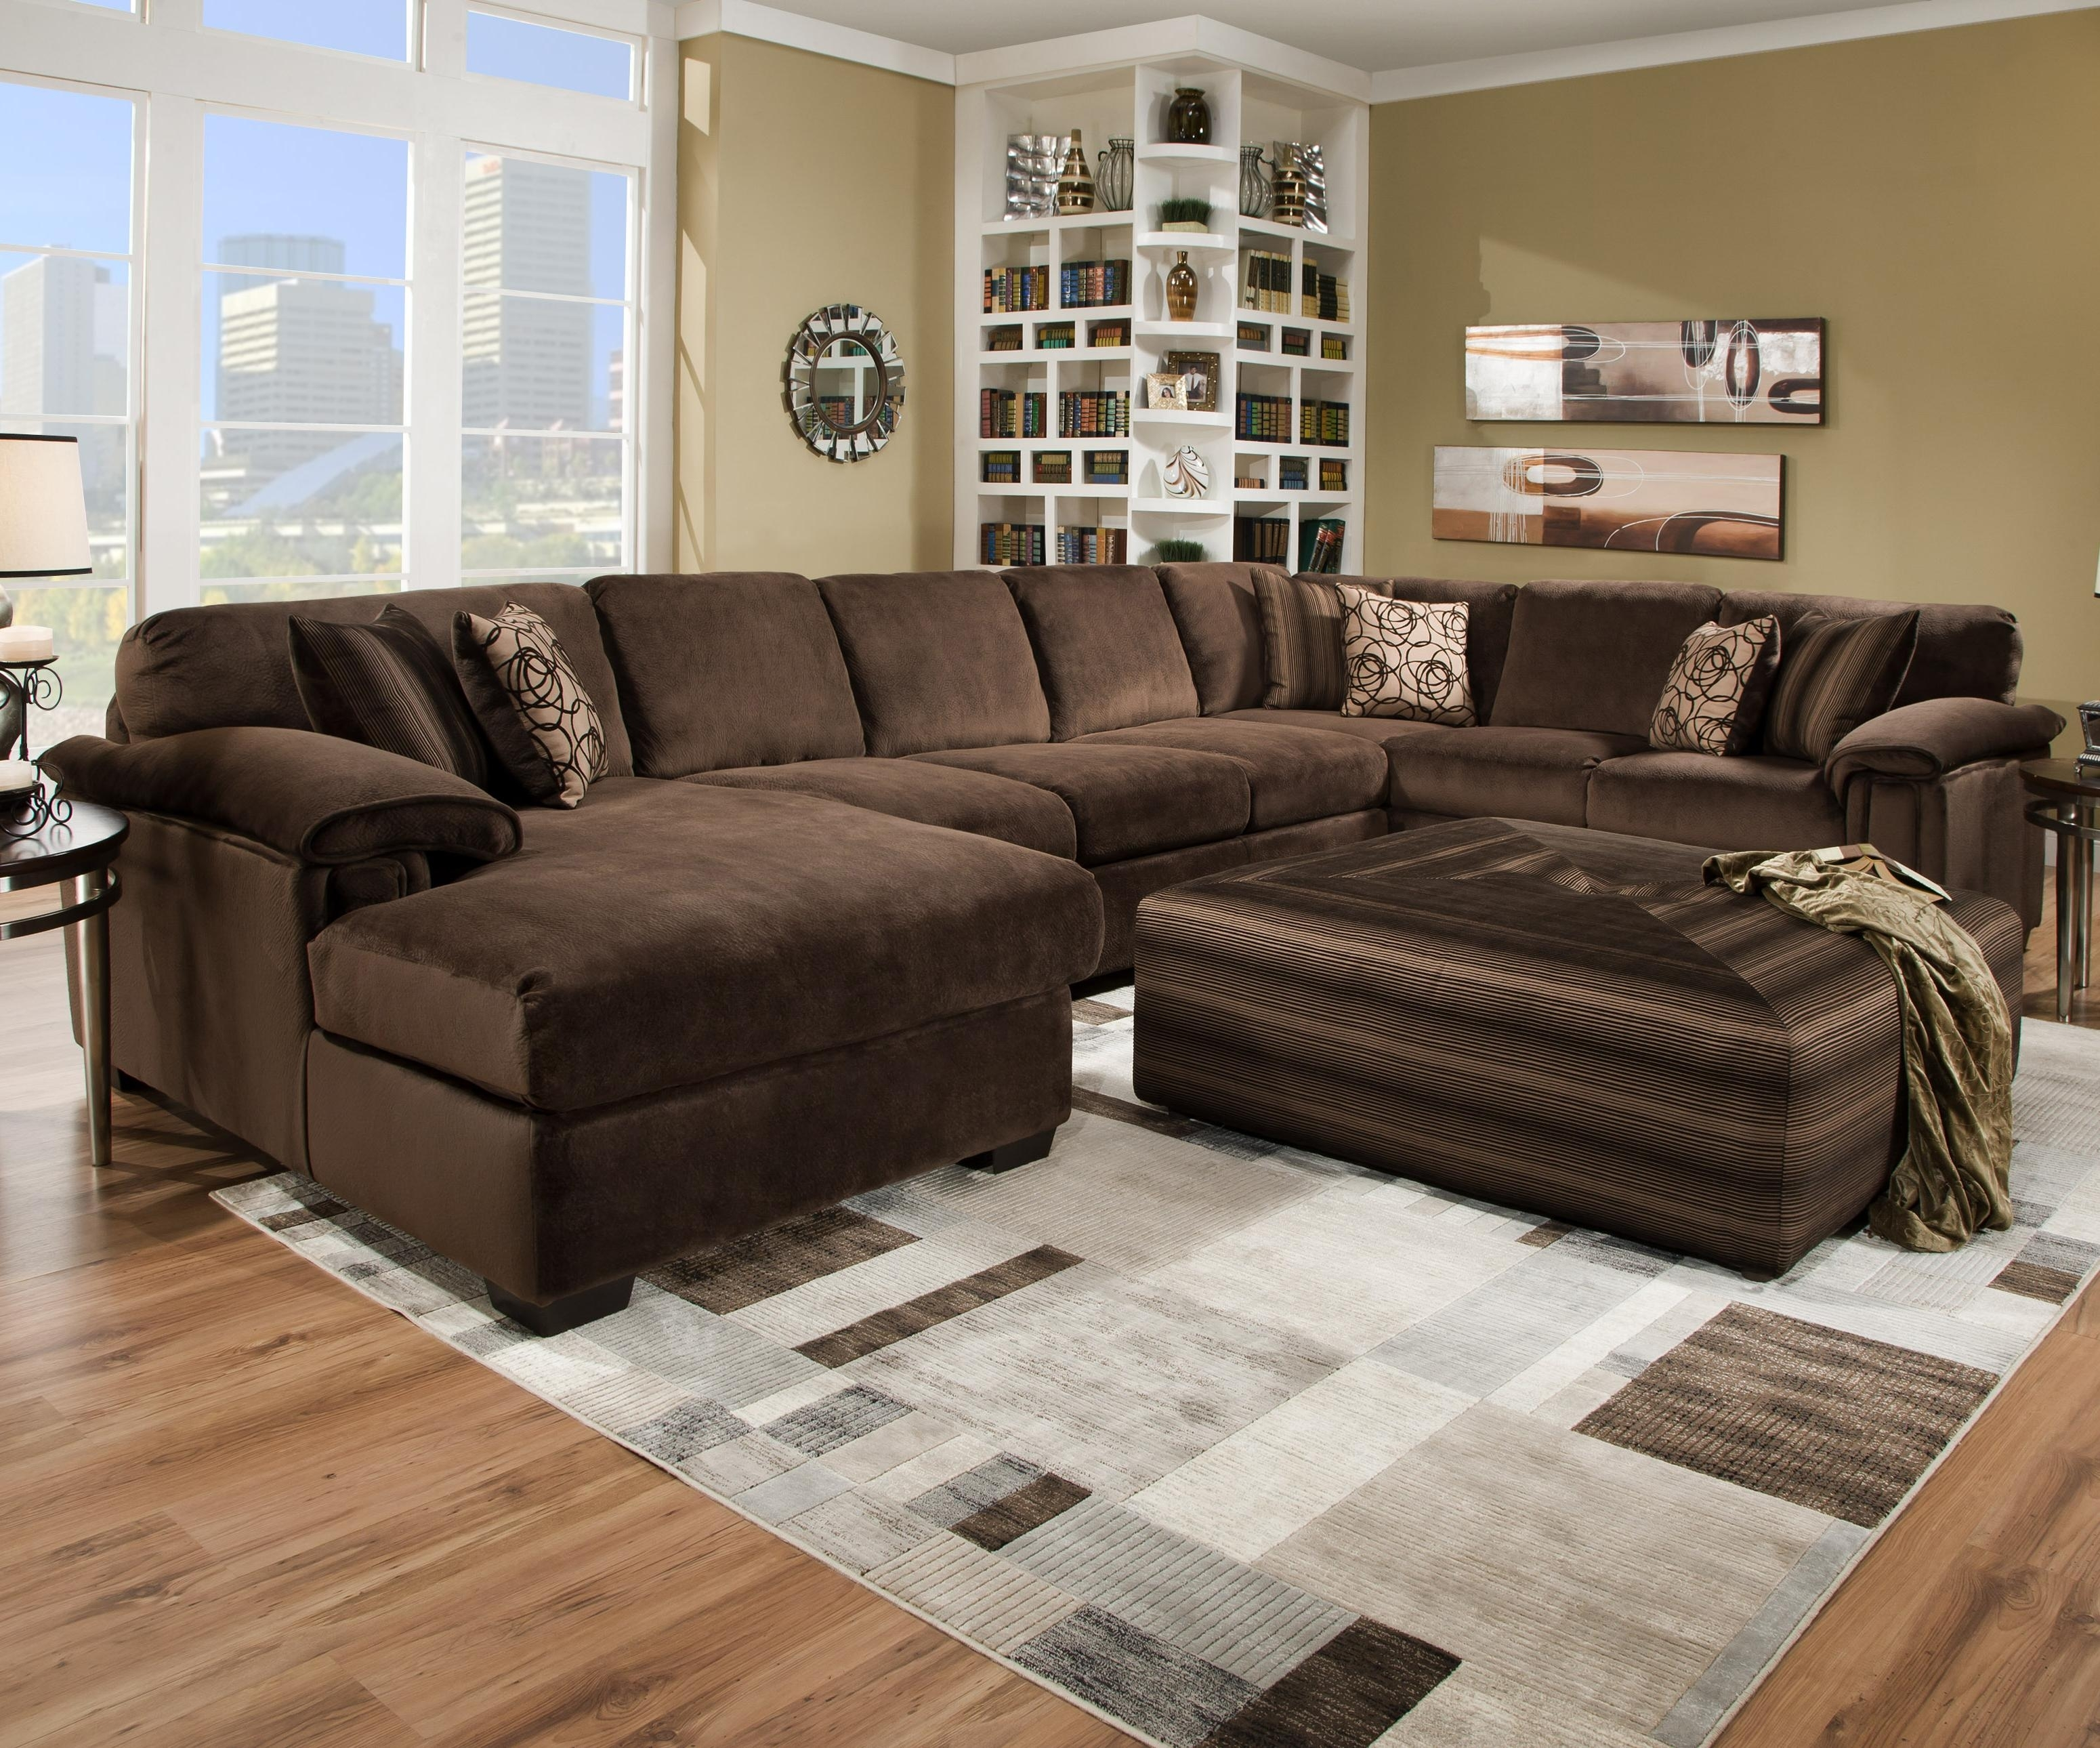 Oversized Ottoman Coffee Tables in Sectional Sofas With Oversized Ottoman